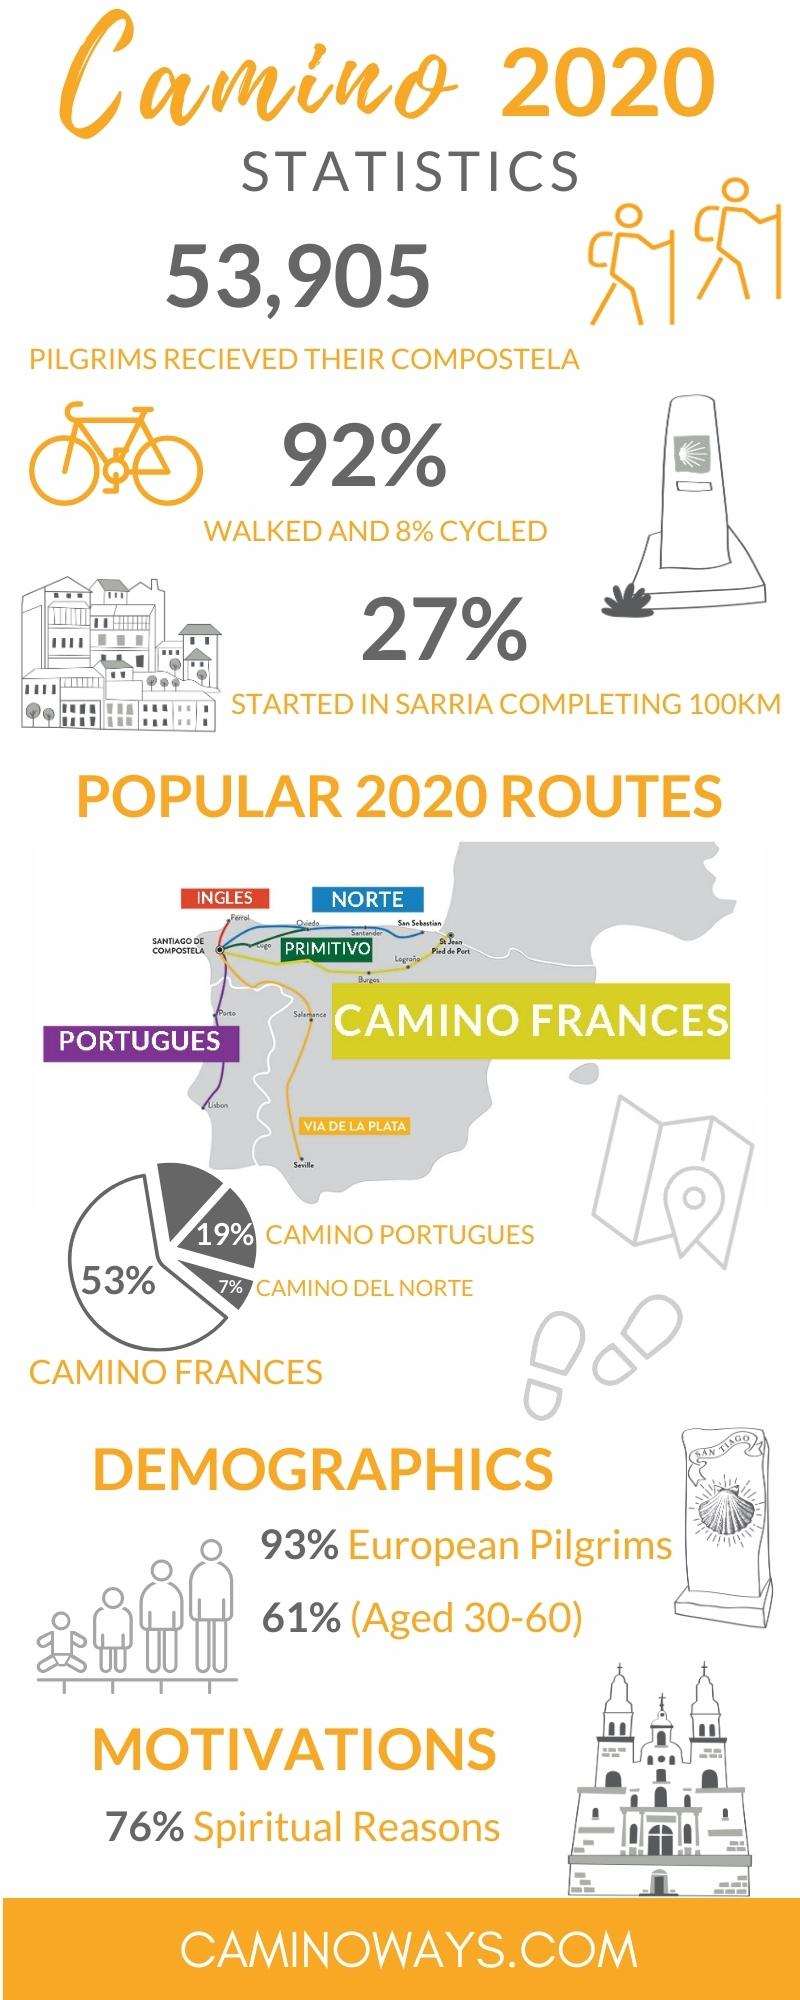 who-walked-the-camino-in-2020-infographic-caminoways.com